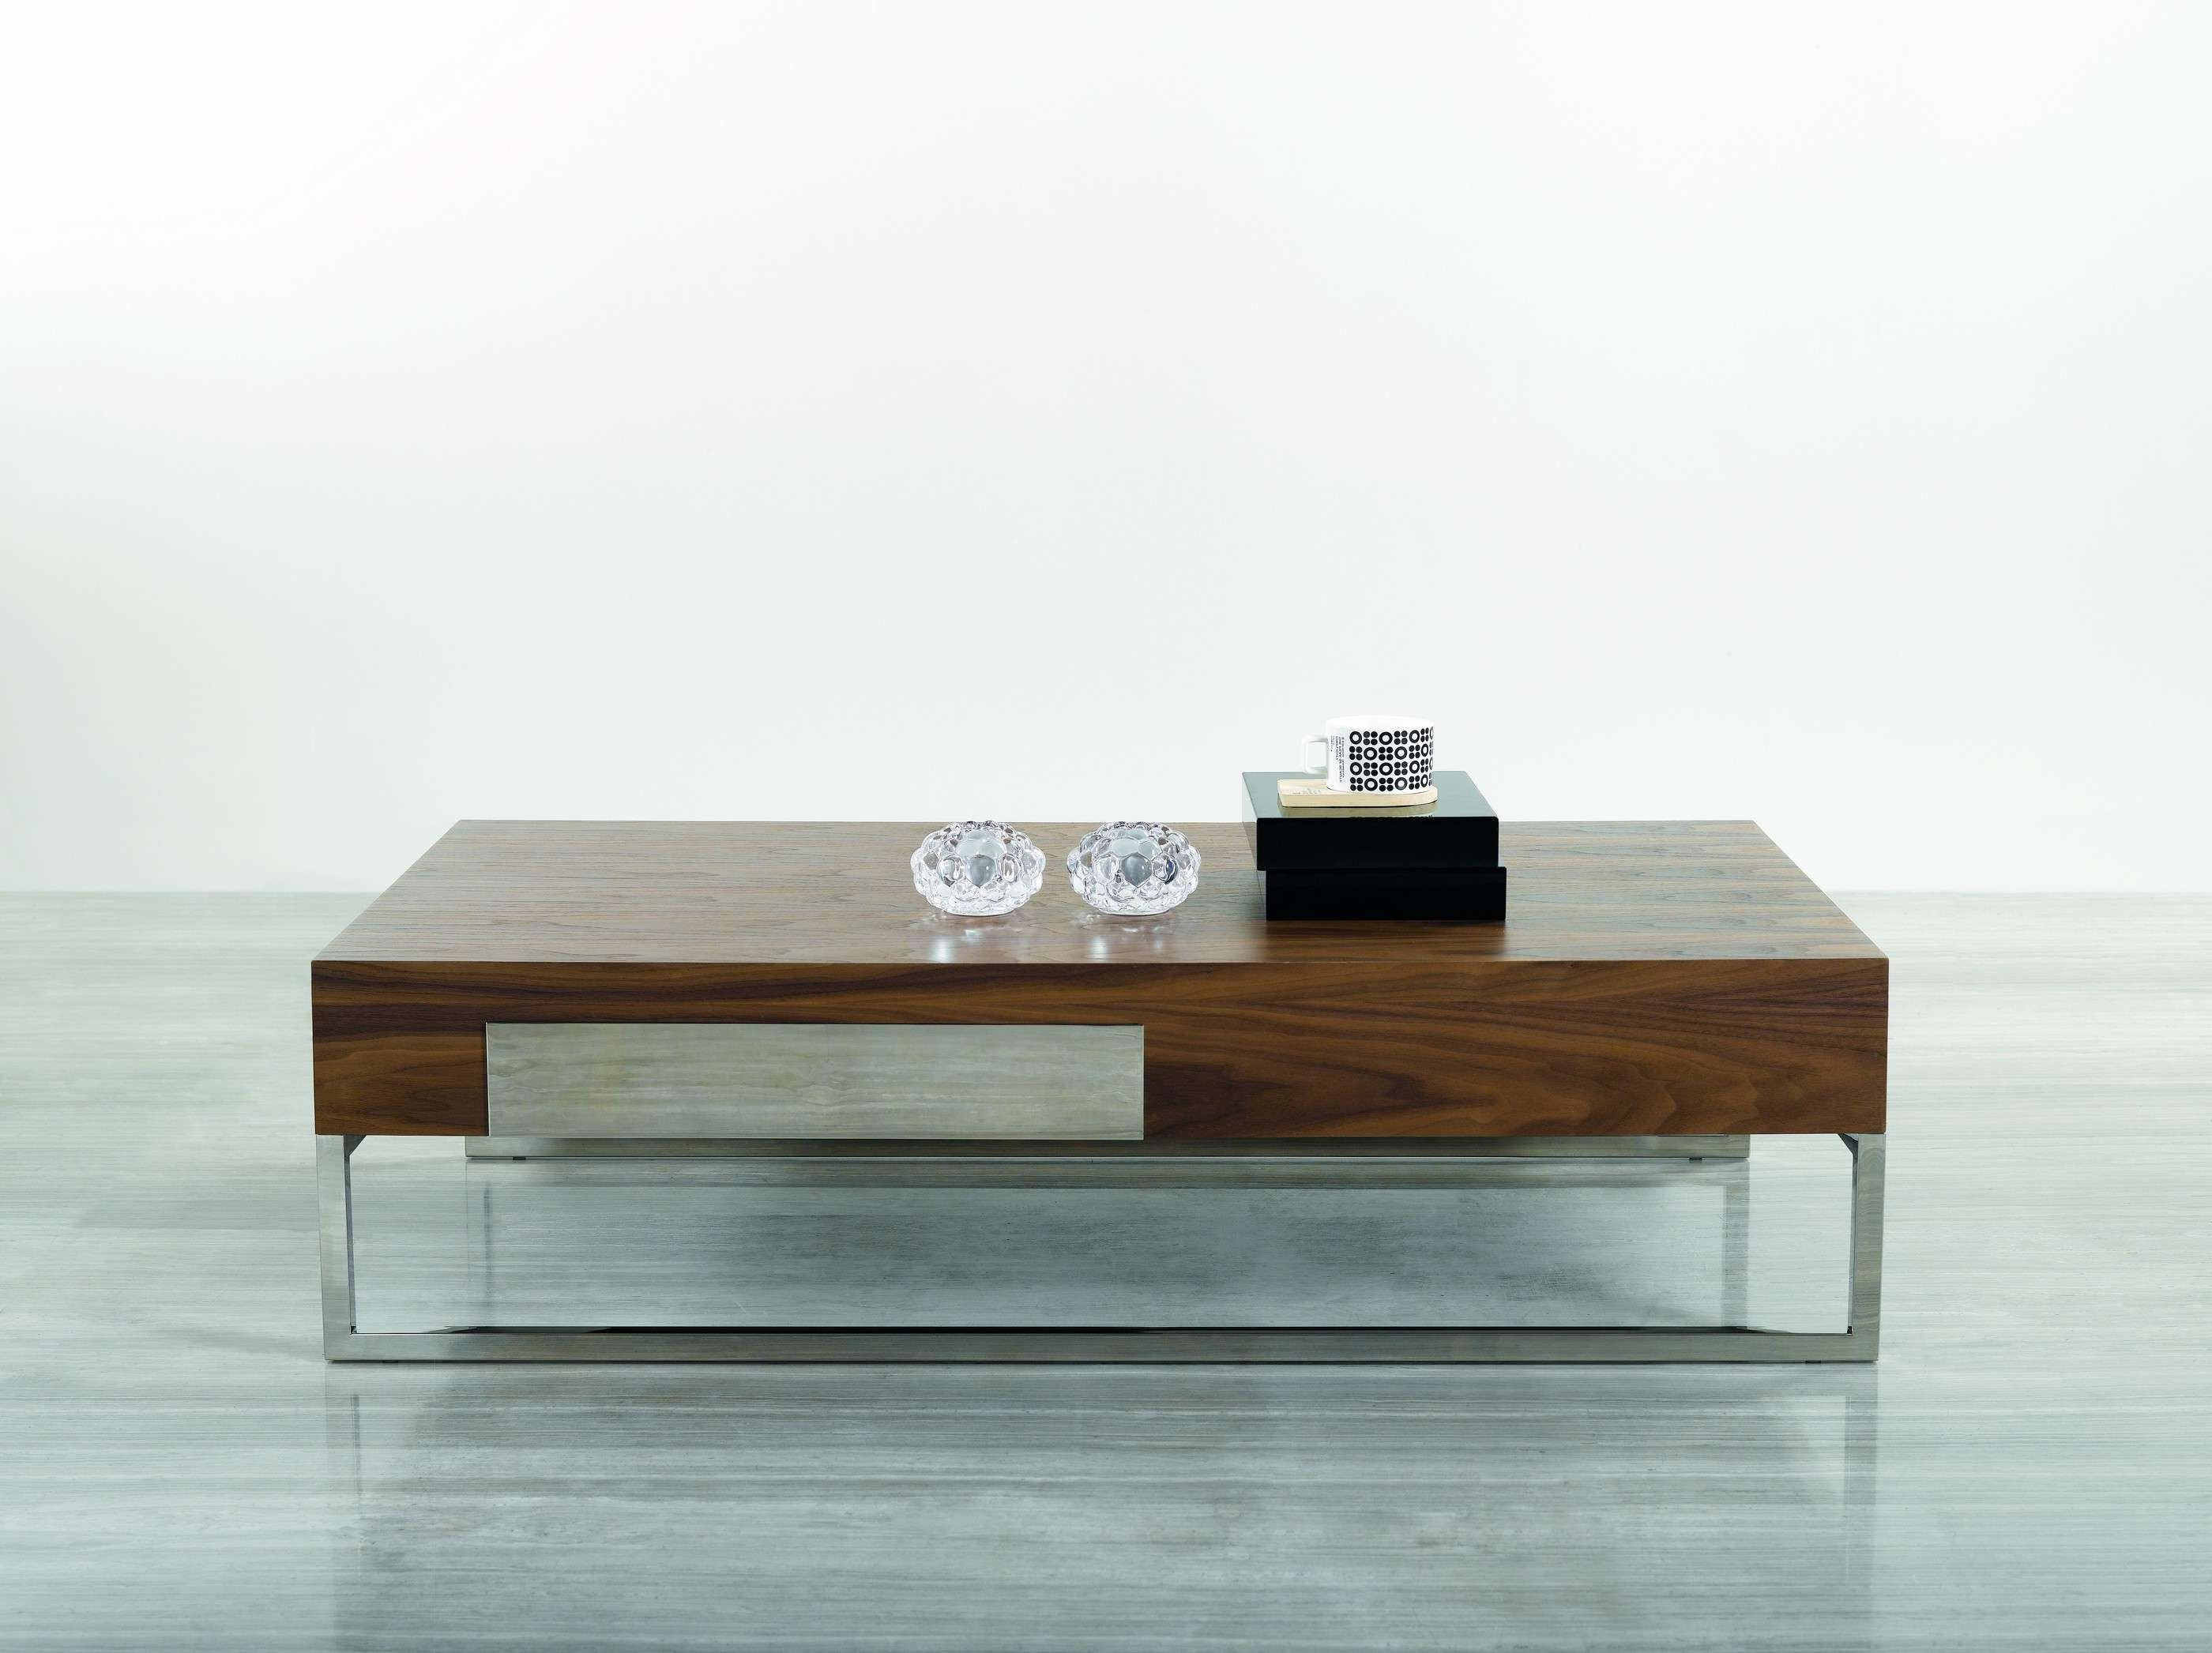 Creative Modern Coffee Tables Cheap On Interior Home Design Throughout Best And Newest Modern Coffee Tables (View 12 of 20)